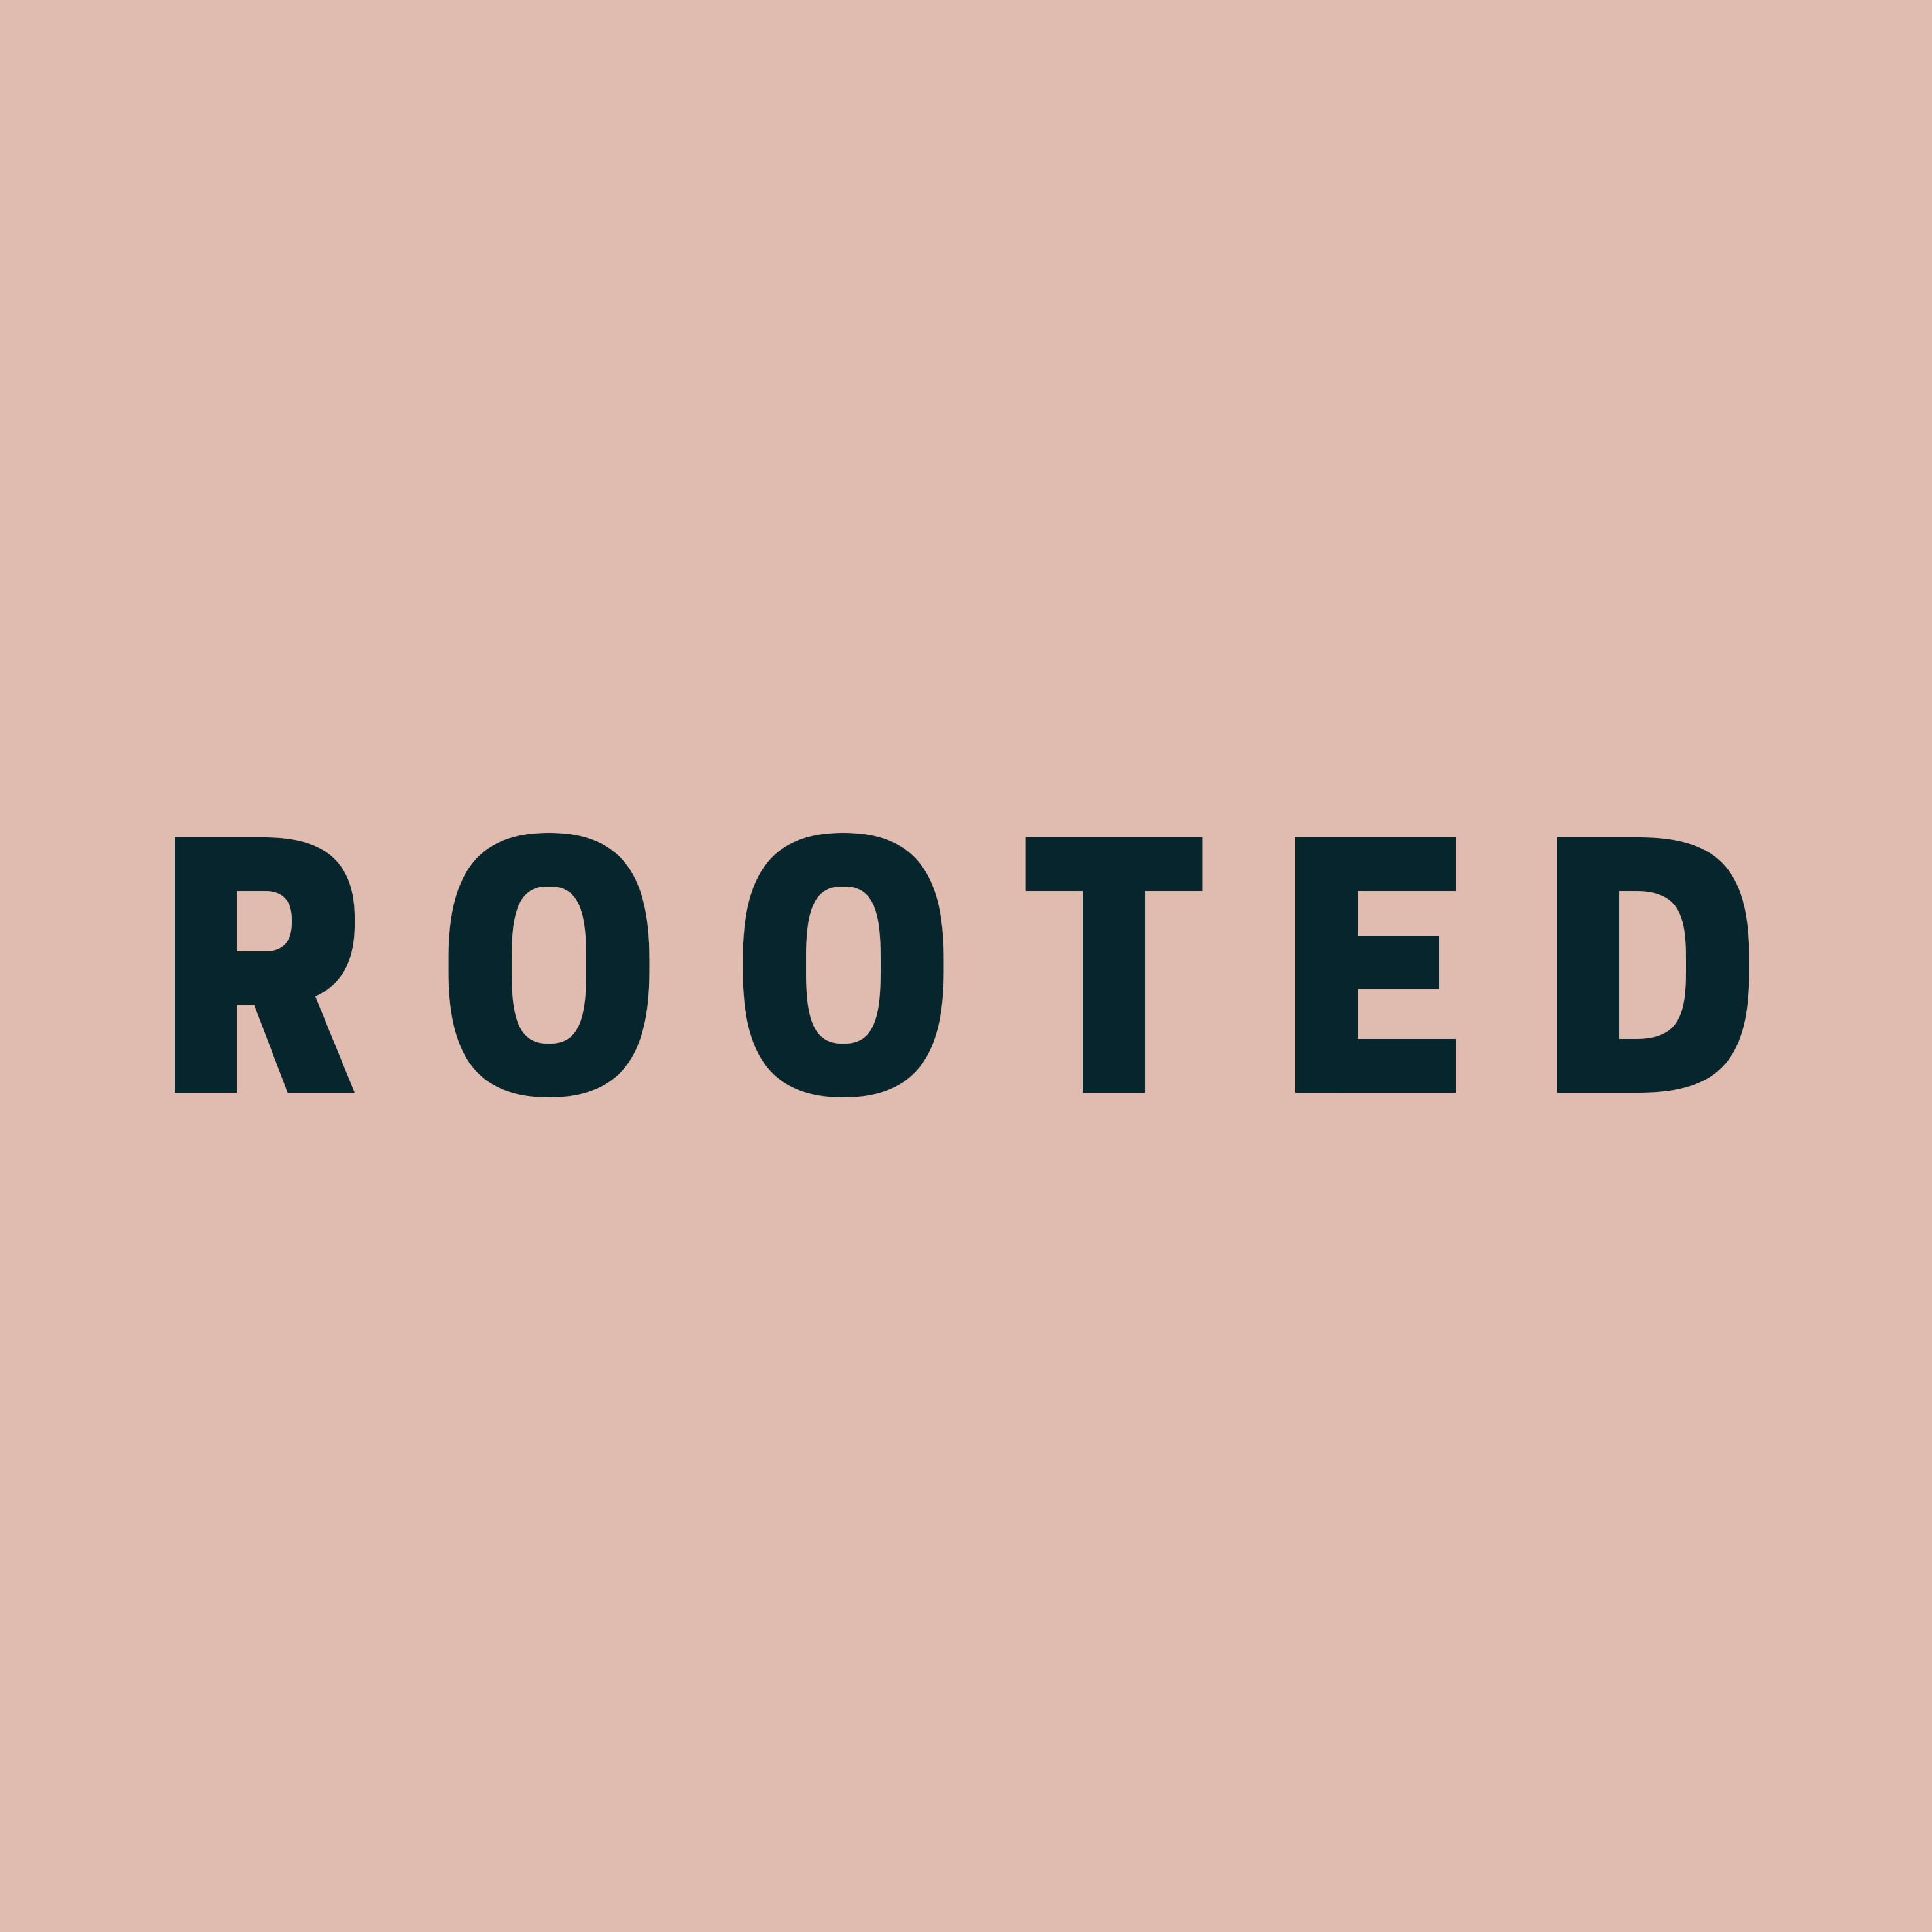 The logo for Rooted Interiors